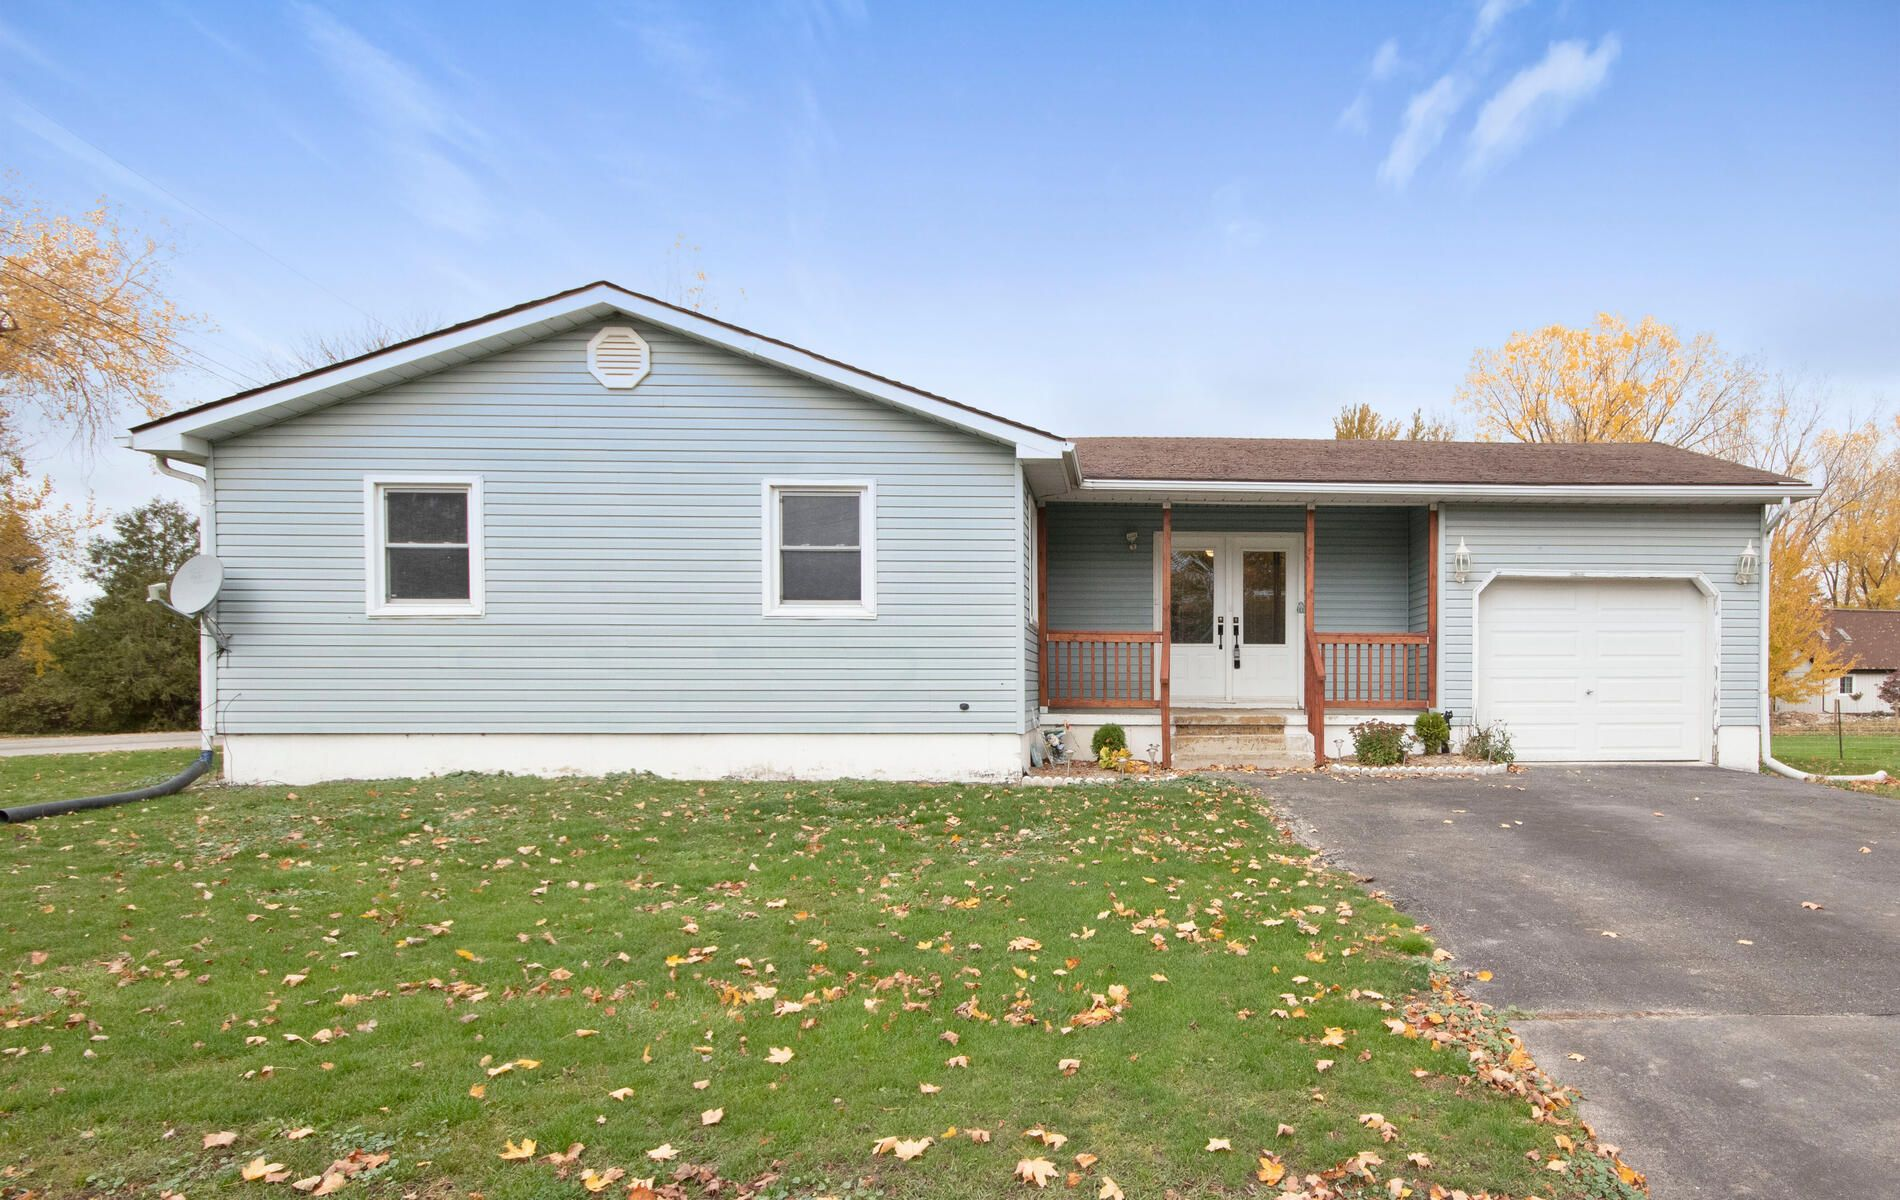 Main Photo: 36810 CREDITON Road in Dashwood: Property for sale : MLS®# 40038632